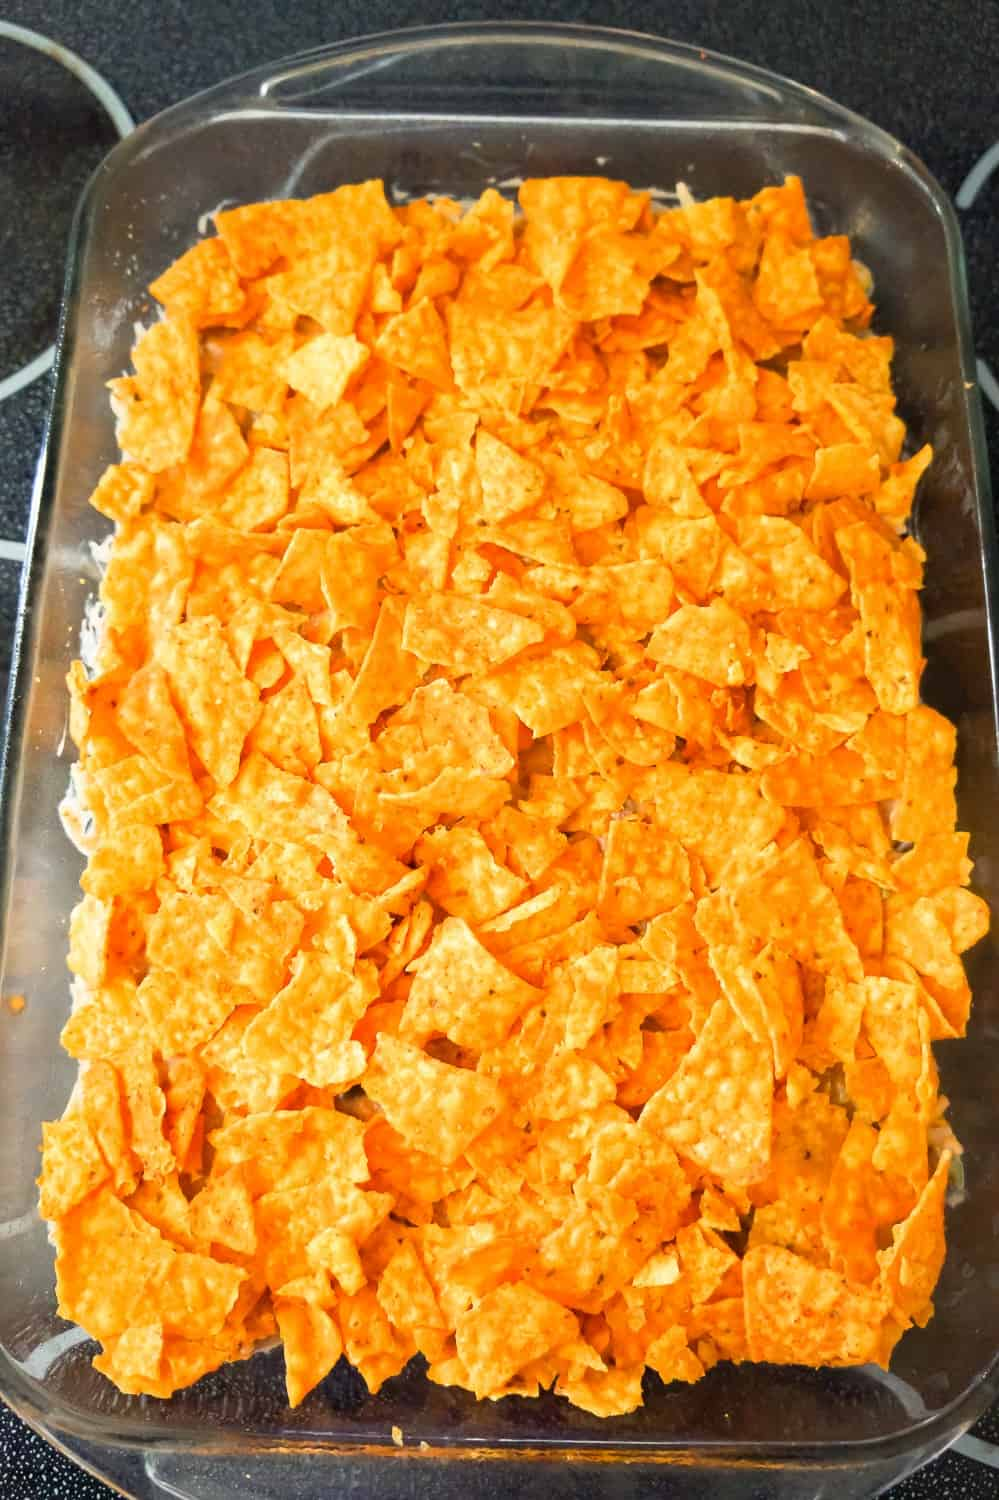 crumbled Doritos on top of ground beef casserole